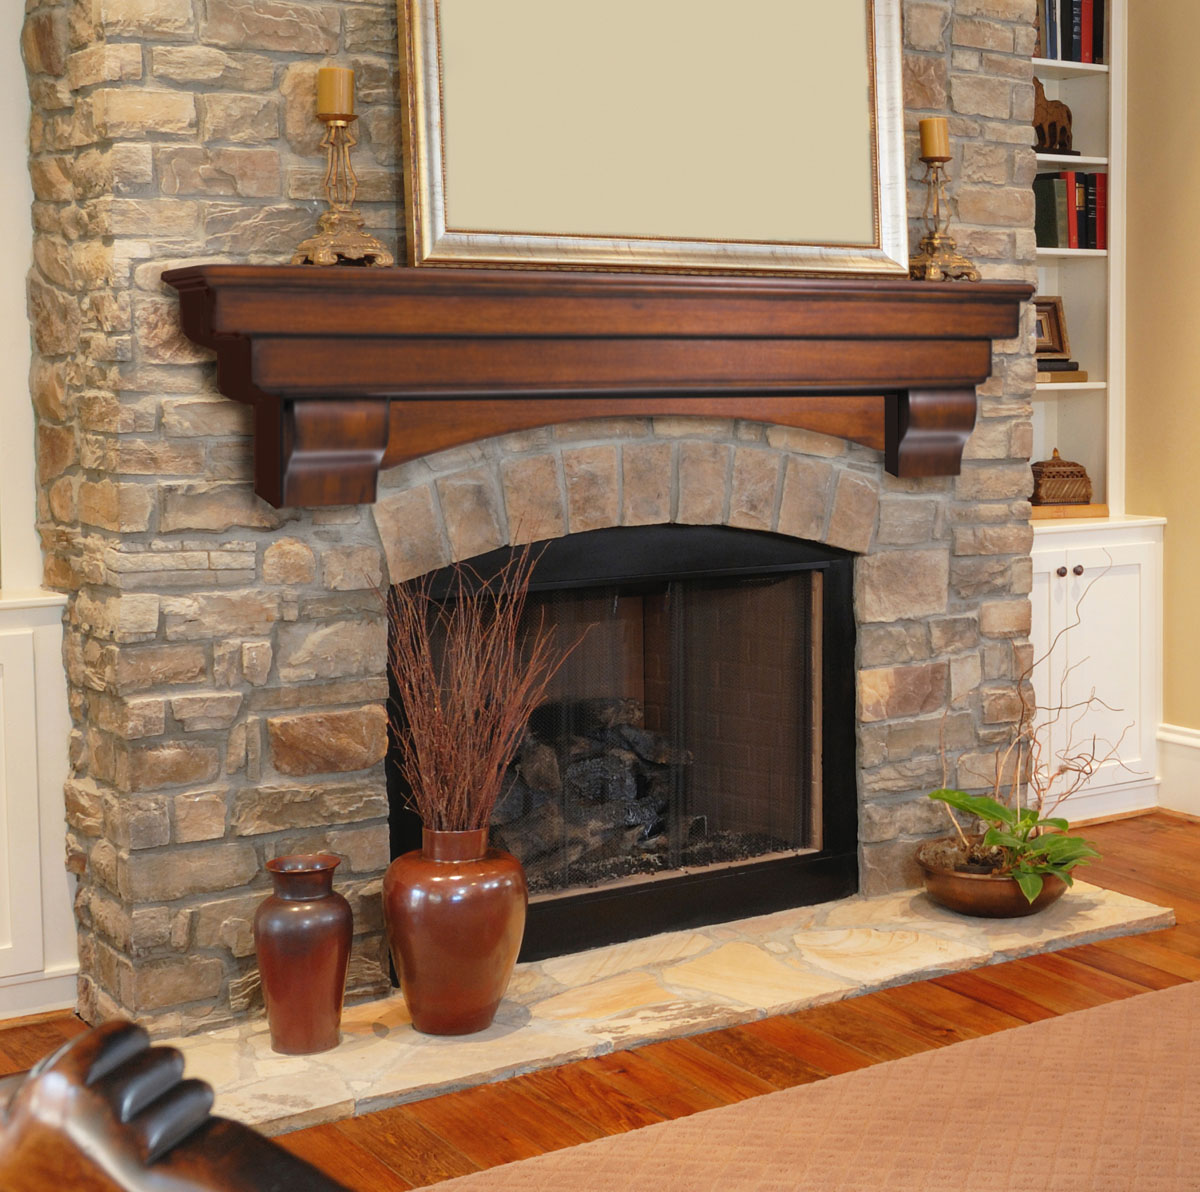 Tips on how to find the best fireplace mantels and for Fire place mantel ideas